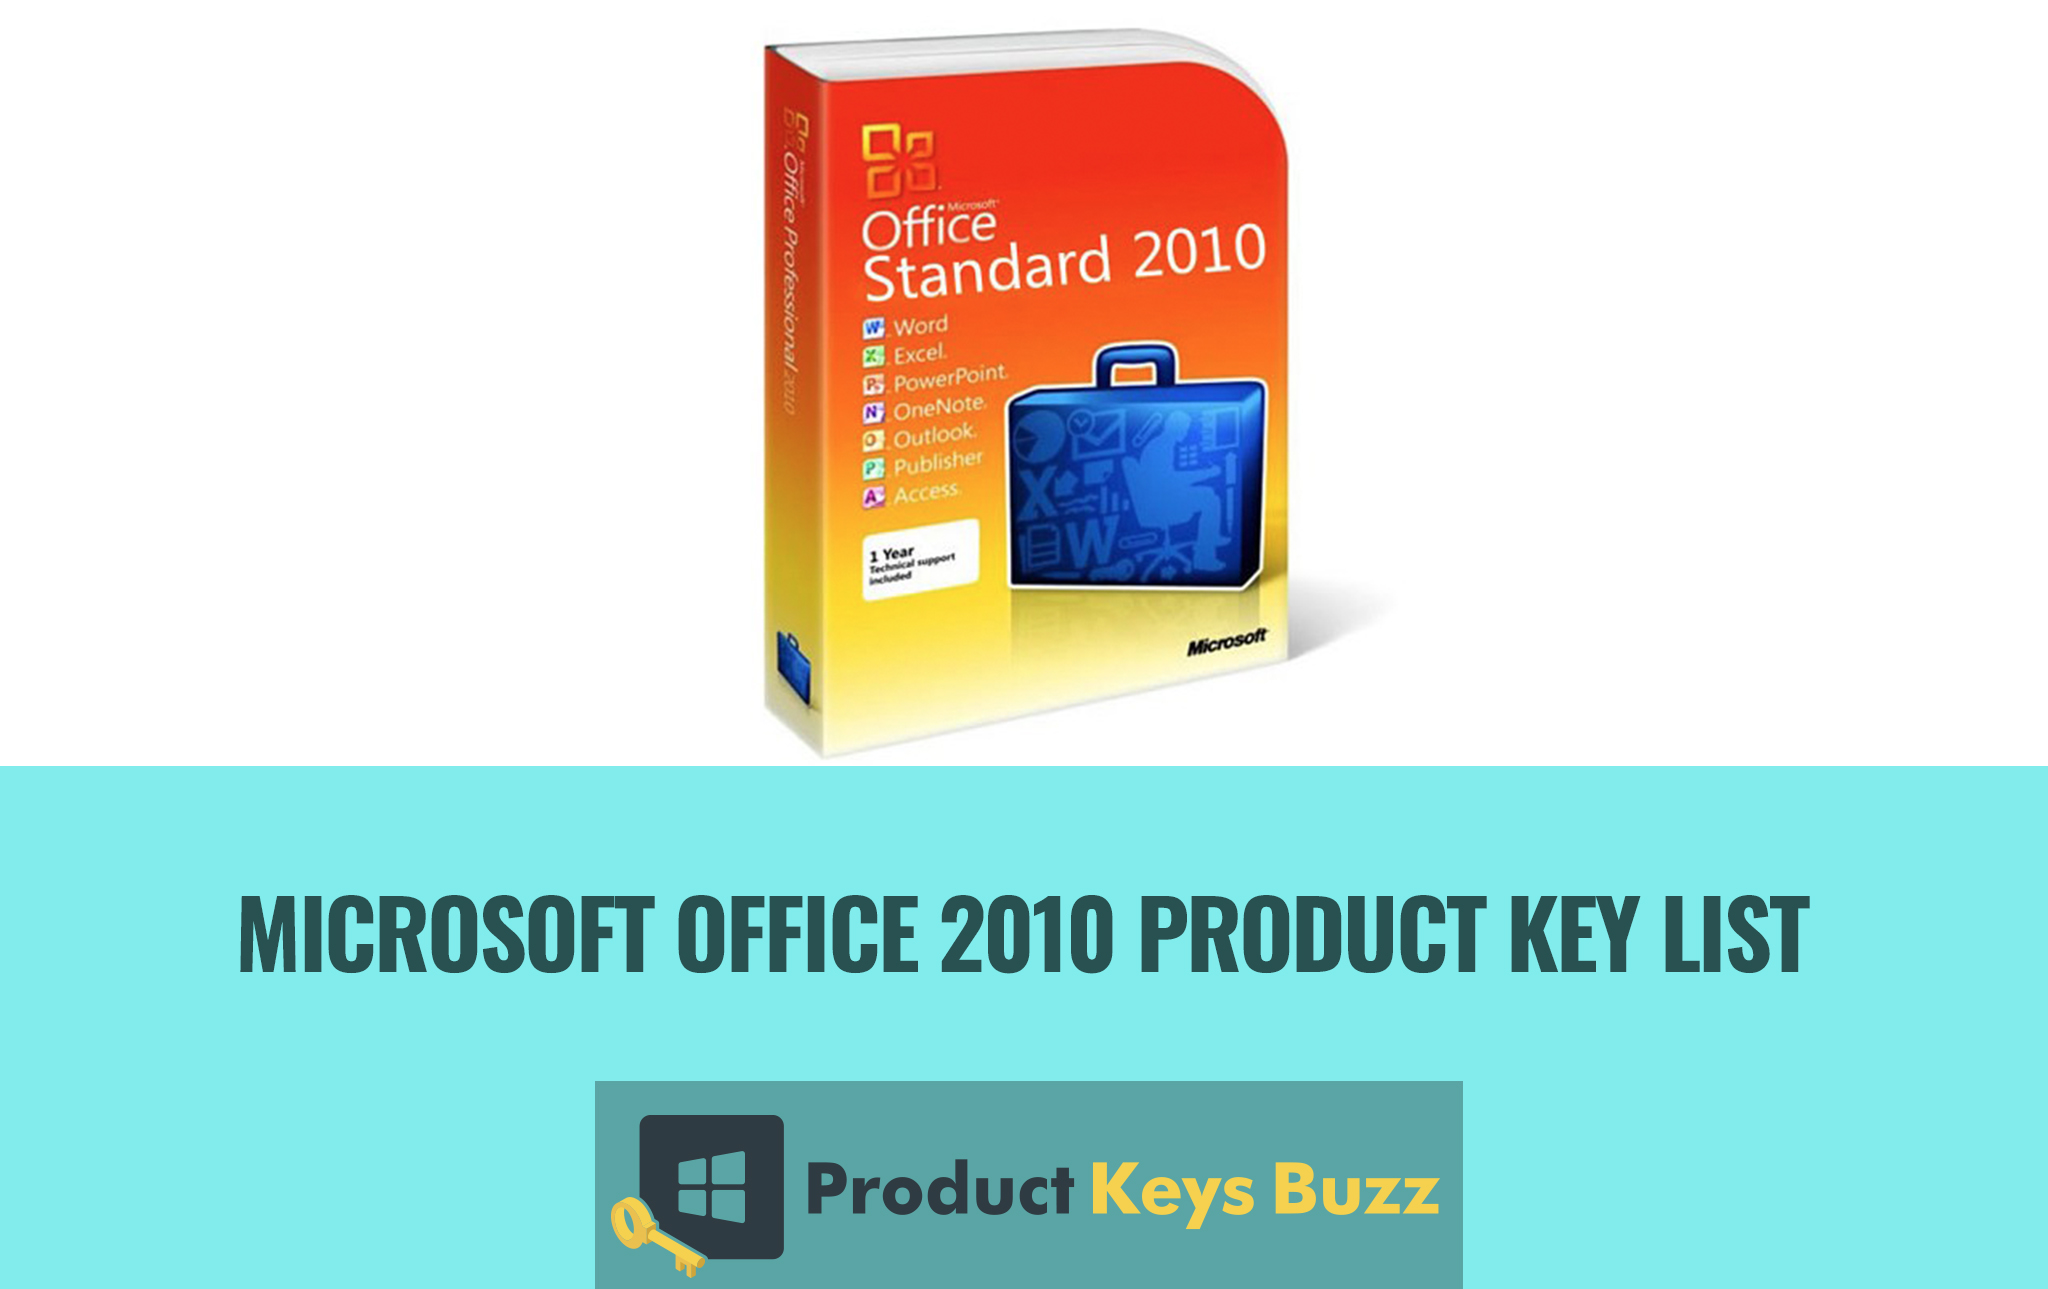 office 2010 toolkit.exe descargar gratis